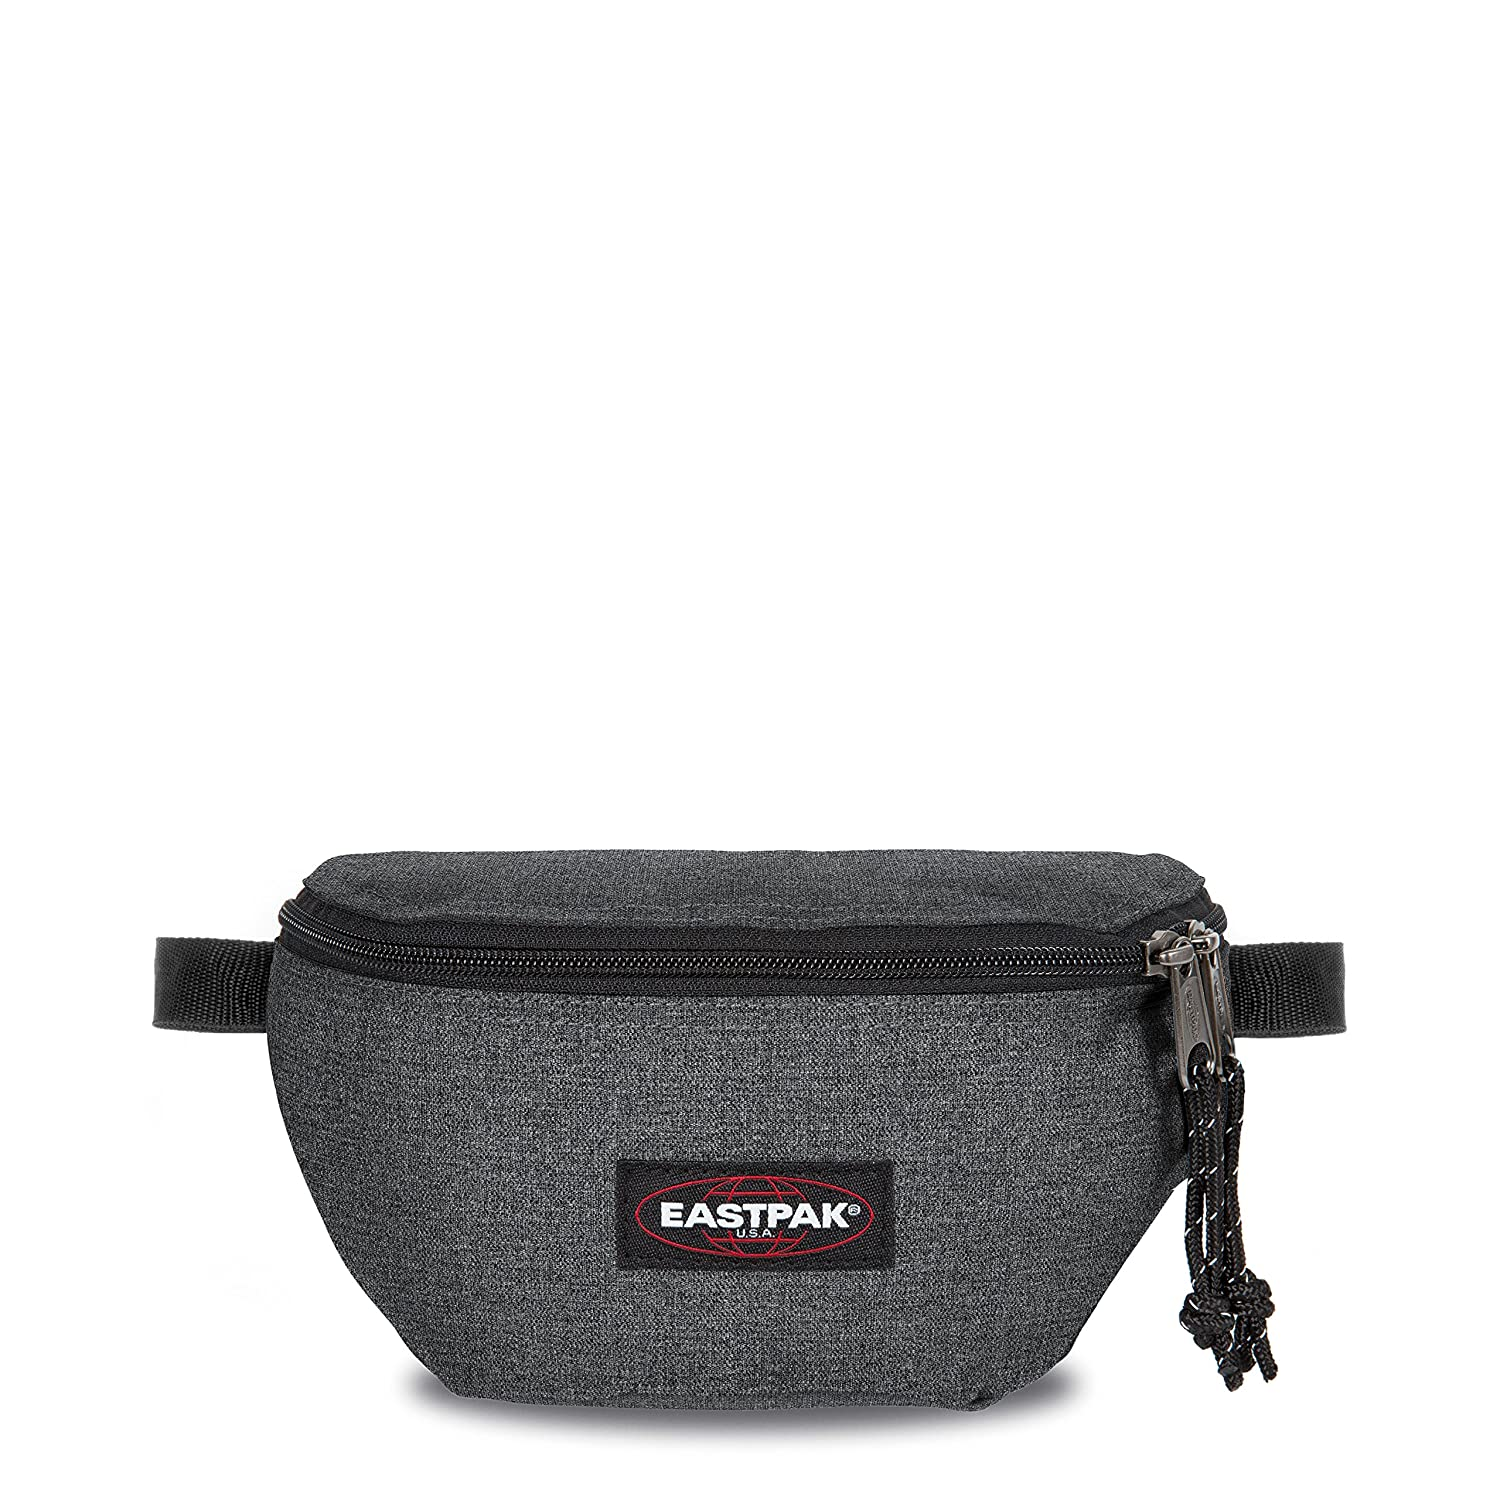 Eastpak Springer Bum Bag One Size Black EK074008